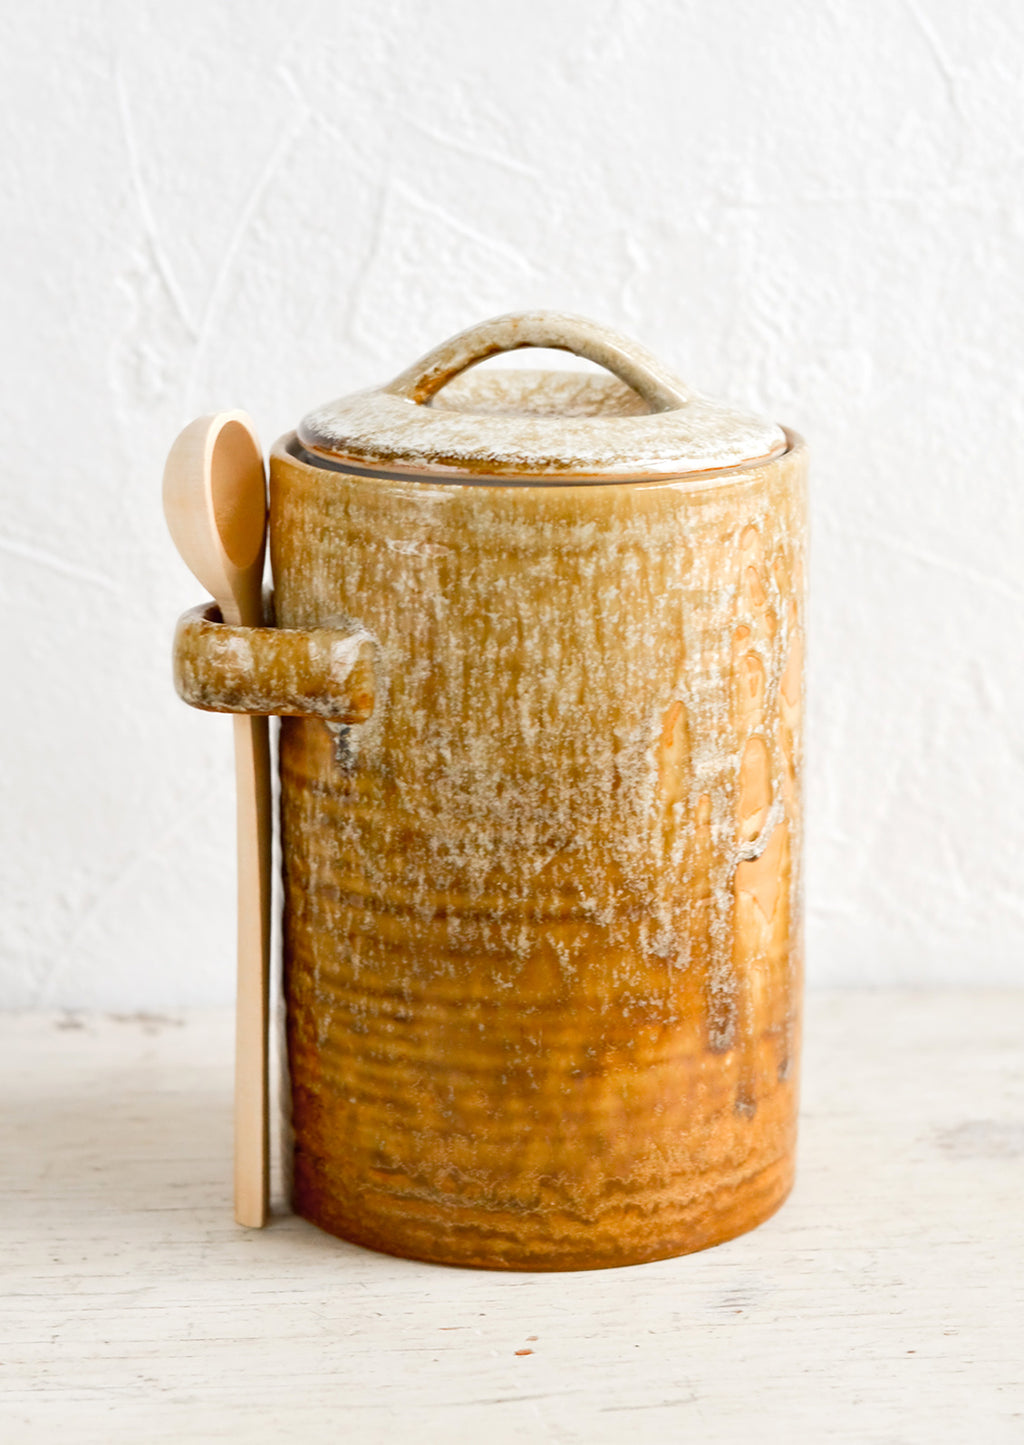 Tall / Light Brown: A ceramic storage jar in rustic light brown glaze with a wooden spoon on the side.